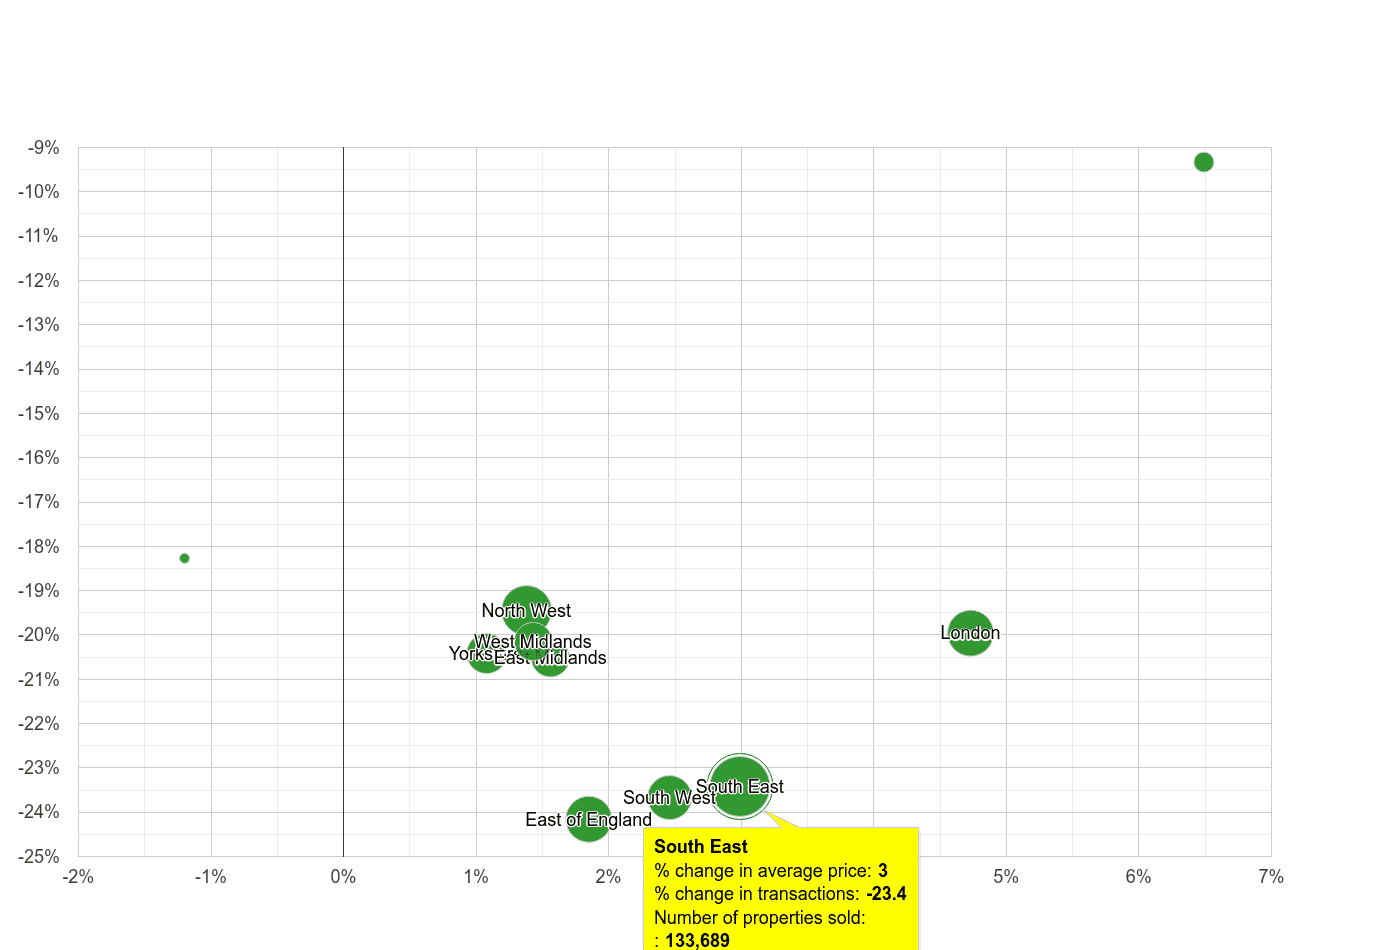 South East property price and sales volume change relative to other regions